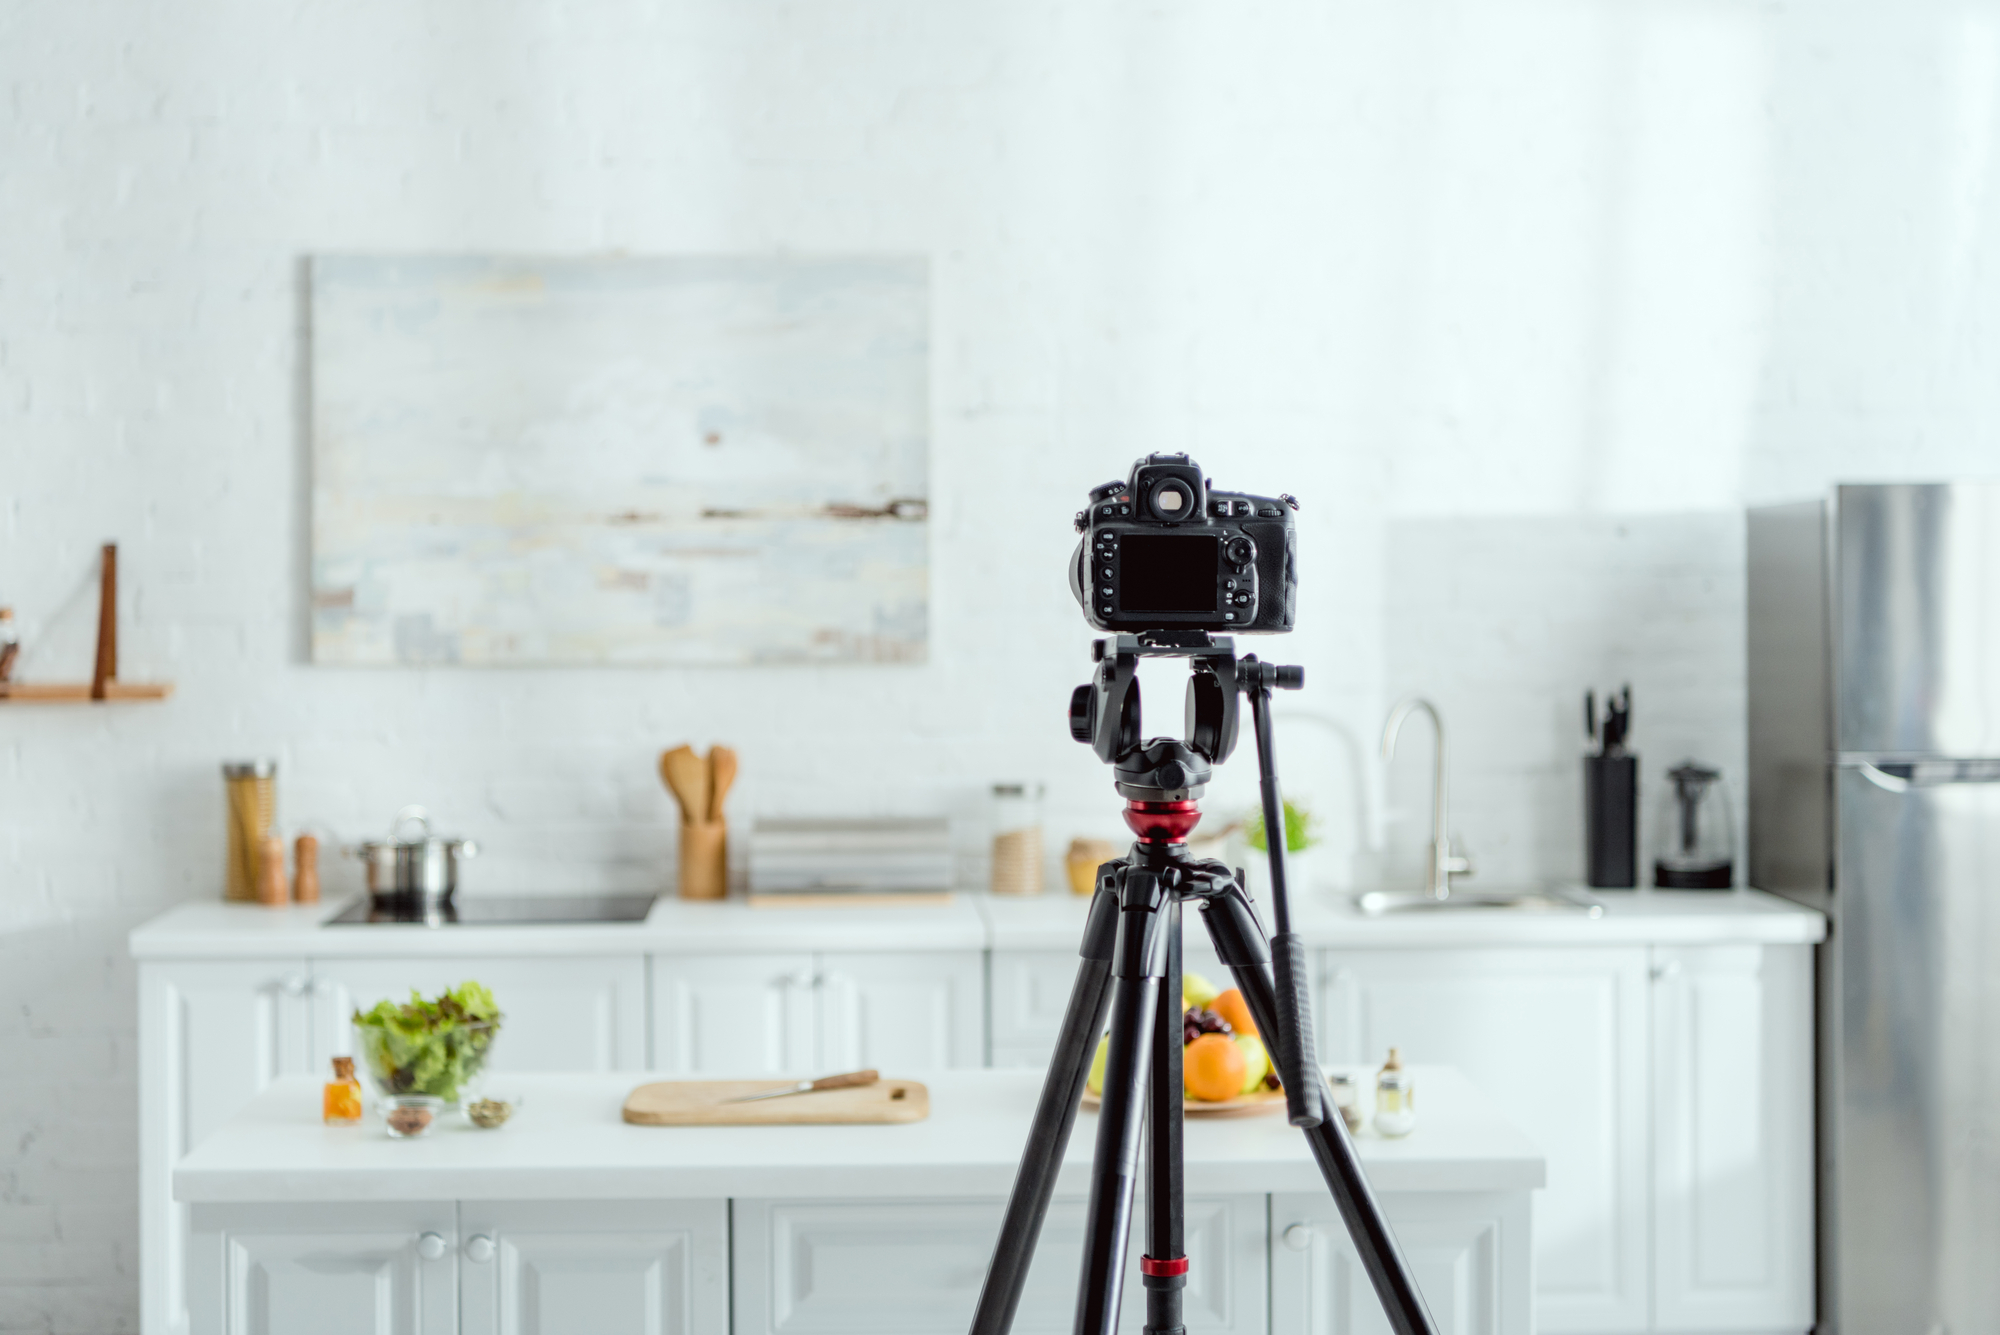 Expert Tips For Taking Better Rental Listing Photos for Your Condo for Rent in DC